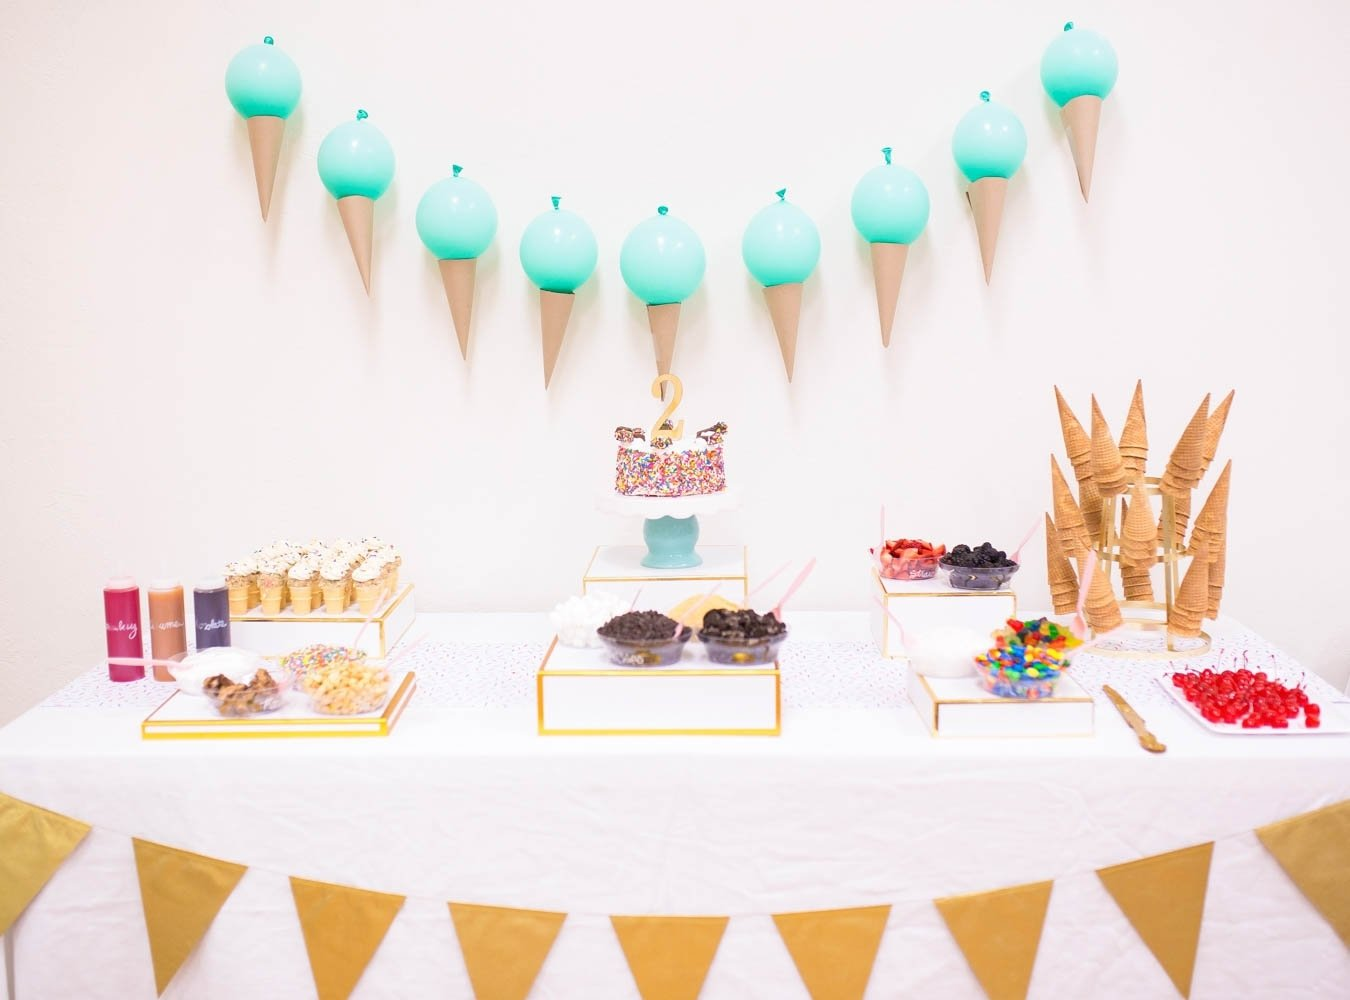 10 Most Recommended Ice Cream Social Party Ideas a two sweet ice cream birthday party project nursery 2020